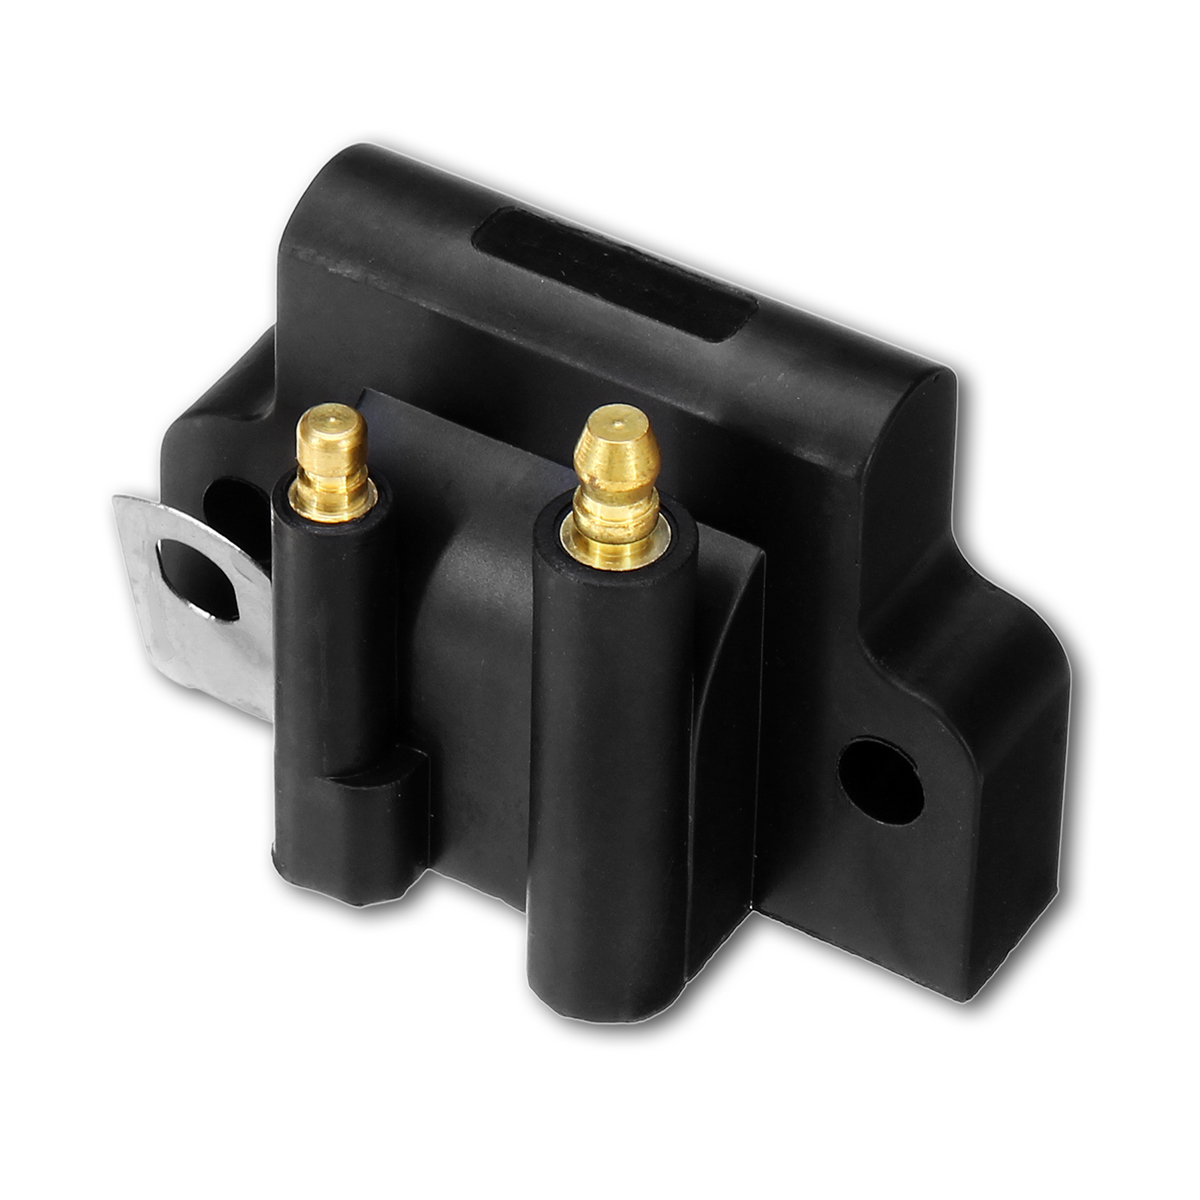 Ignition Coils For JOHNSON EVINRUDE BRP 582508 18-5179 183-2508Ignition Coils For JOHNSON EVINRUDE BRP 582508 18-5179 183-2508